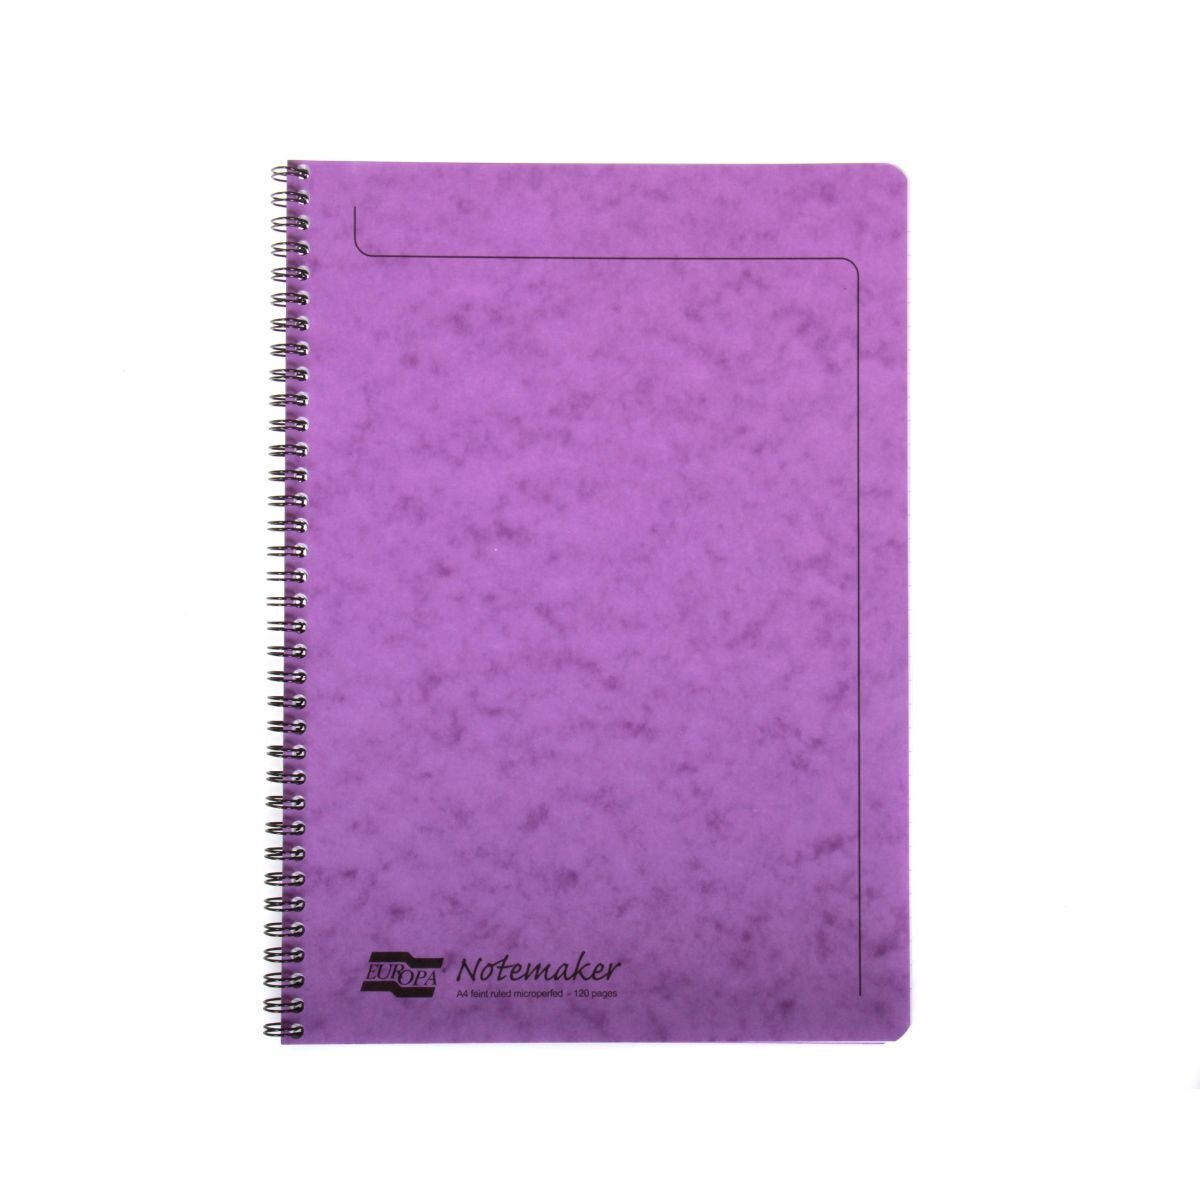 Europa A4 Notemaker 120 Pages 60 Sheets 90gsm Lilac